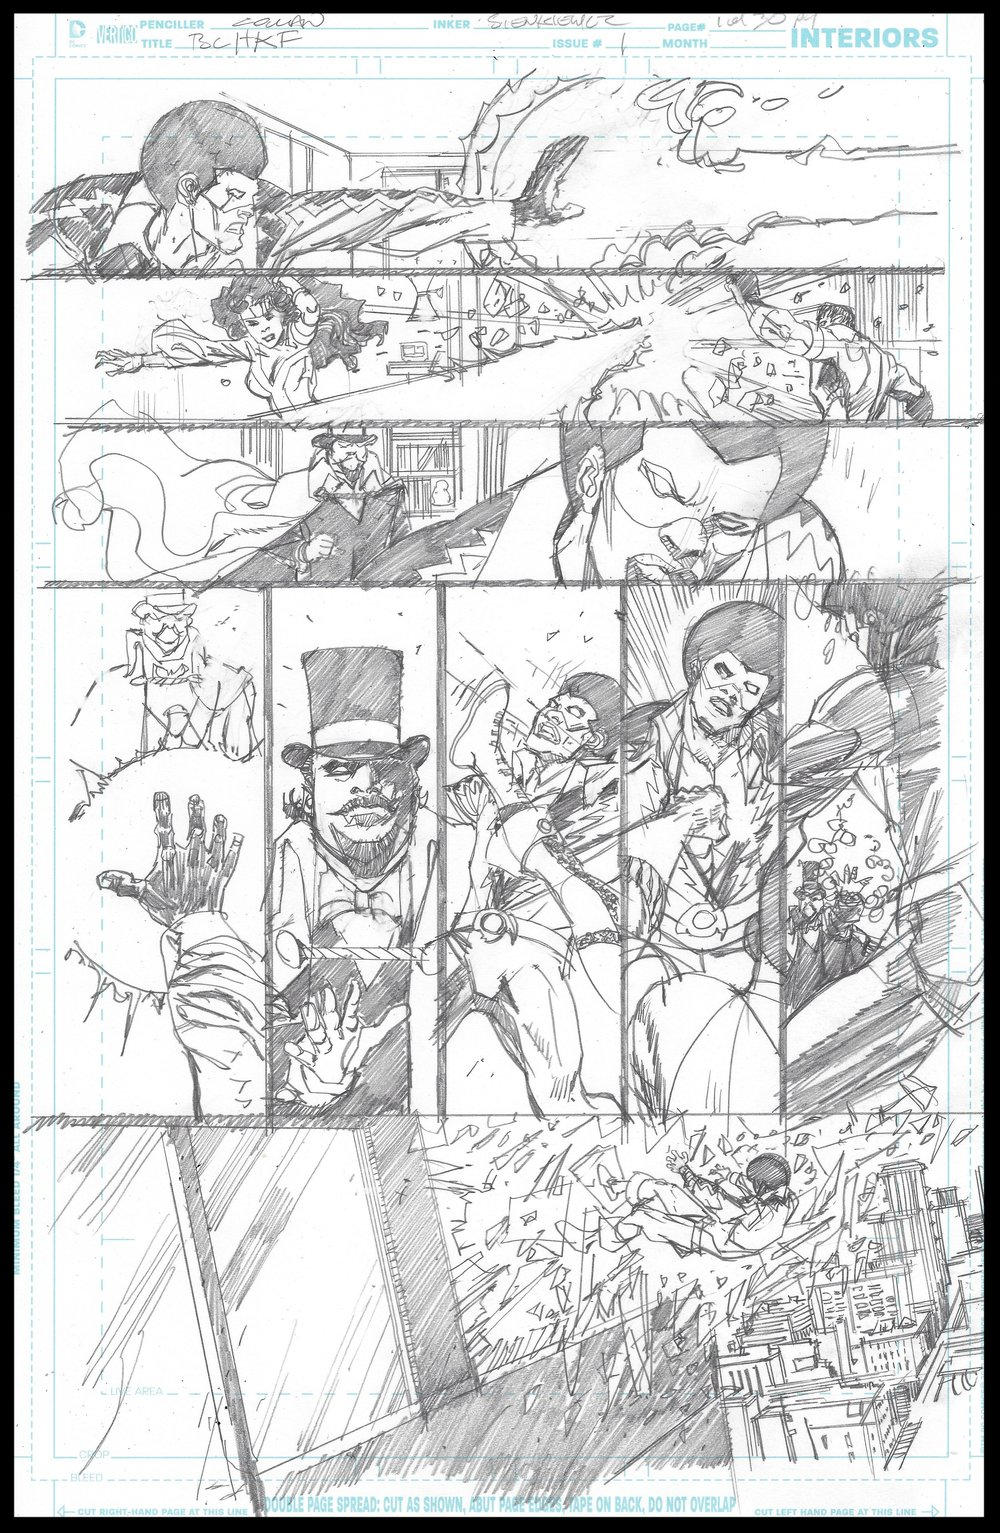 Black Lightning-Hong Kong Phooey #1 - Page 1 - Pencils